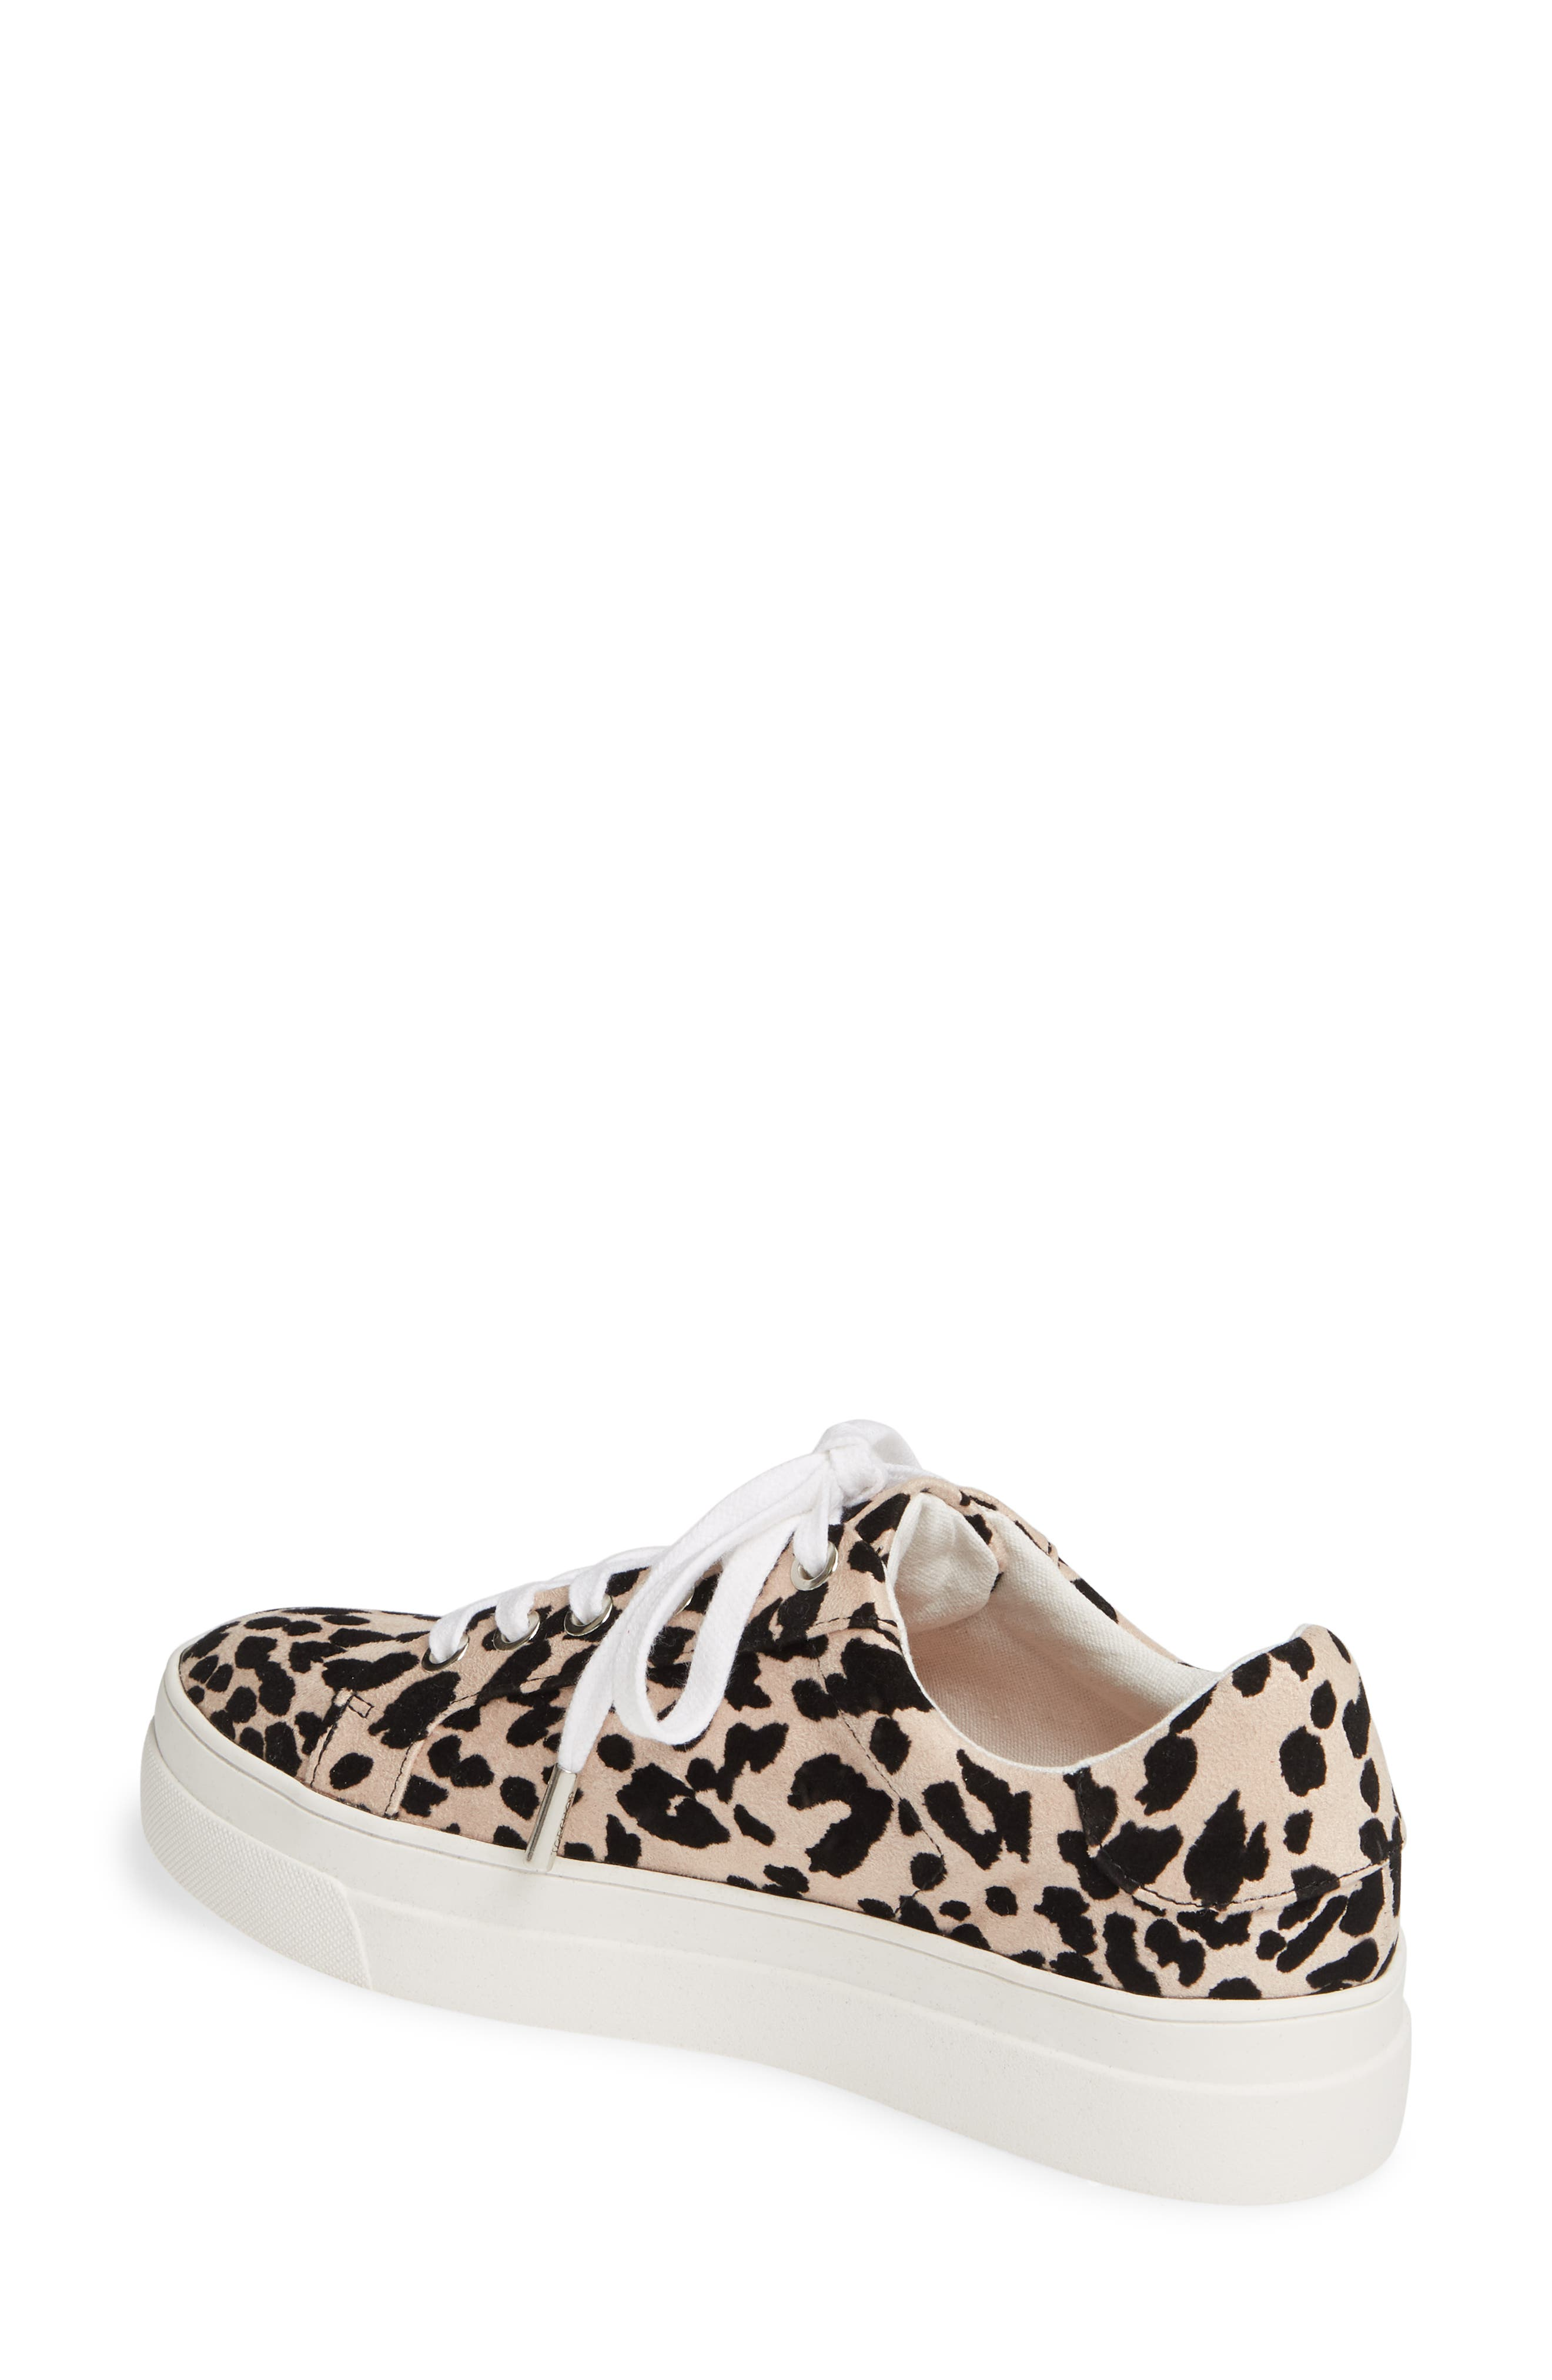 TOPSHOP, Candy Platform Sneaker, Alternate thumbnail 2, color, NUDE MULTI